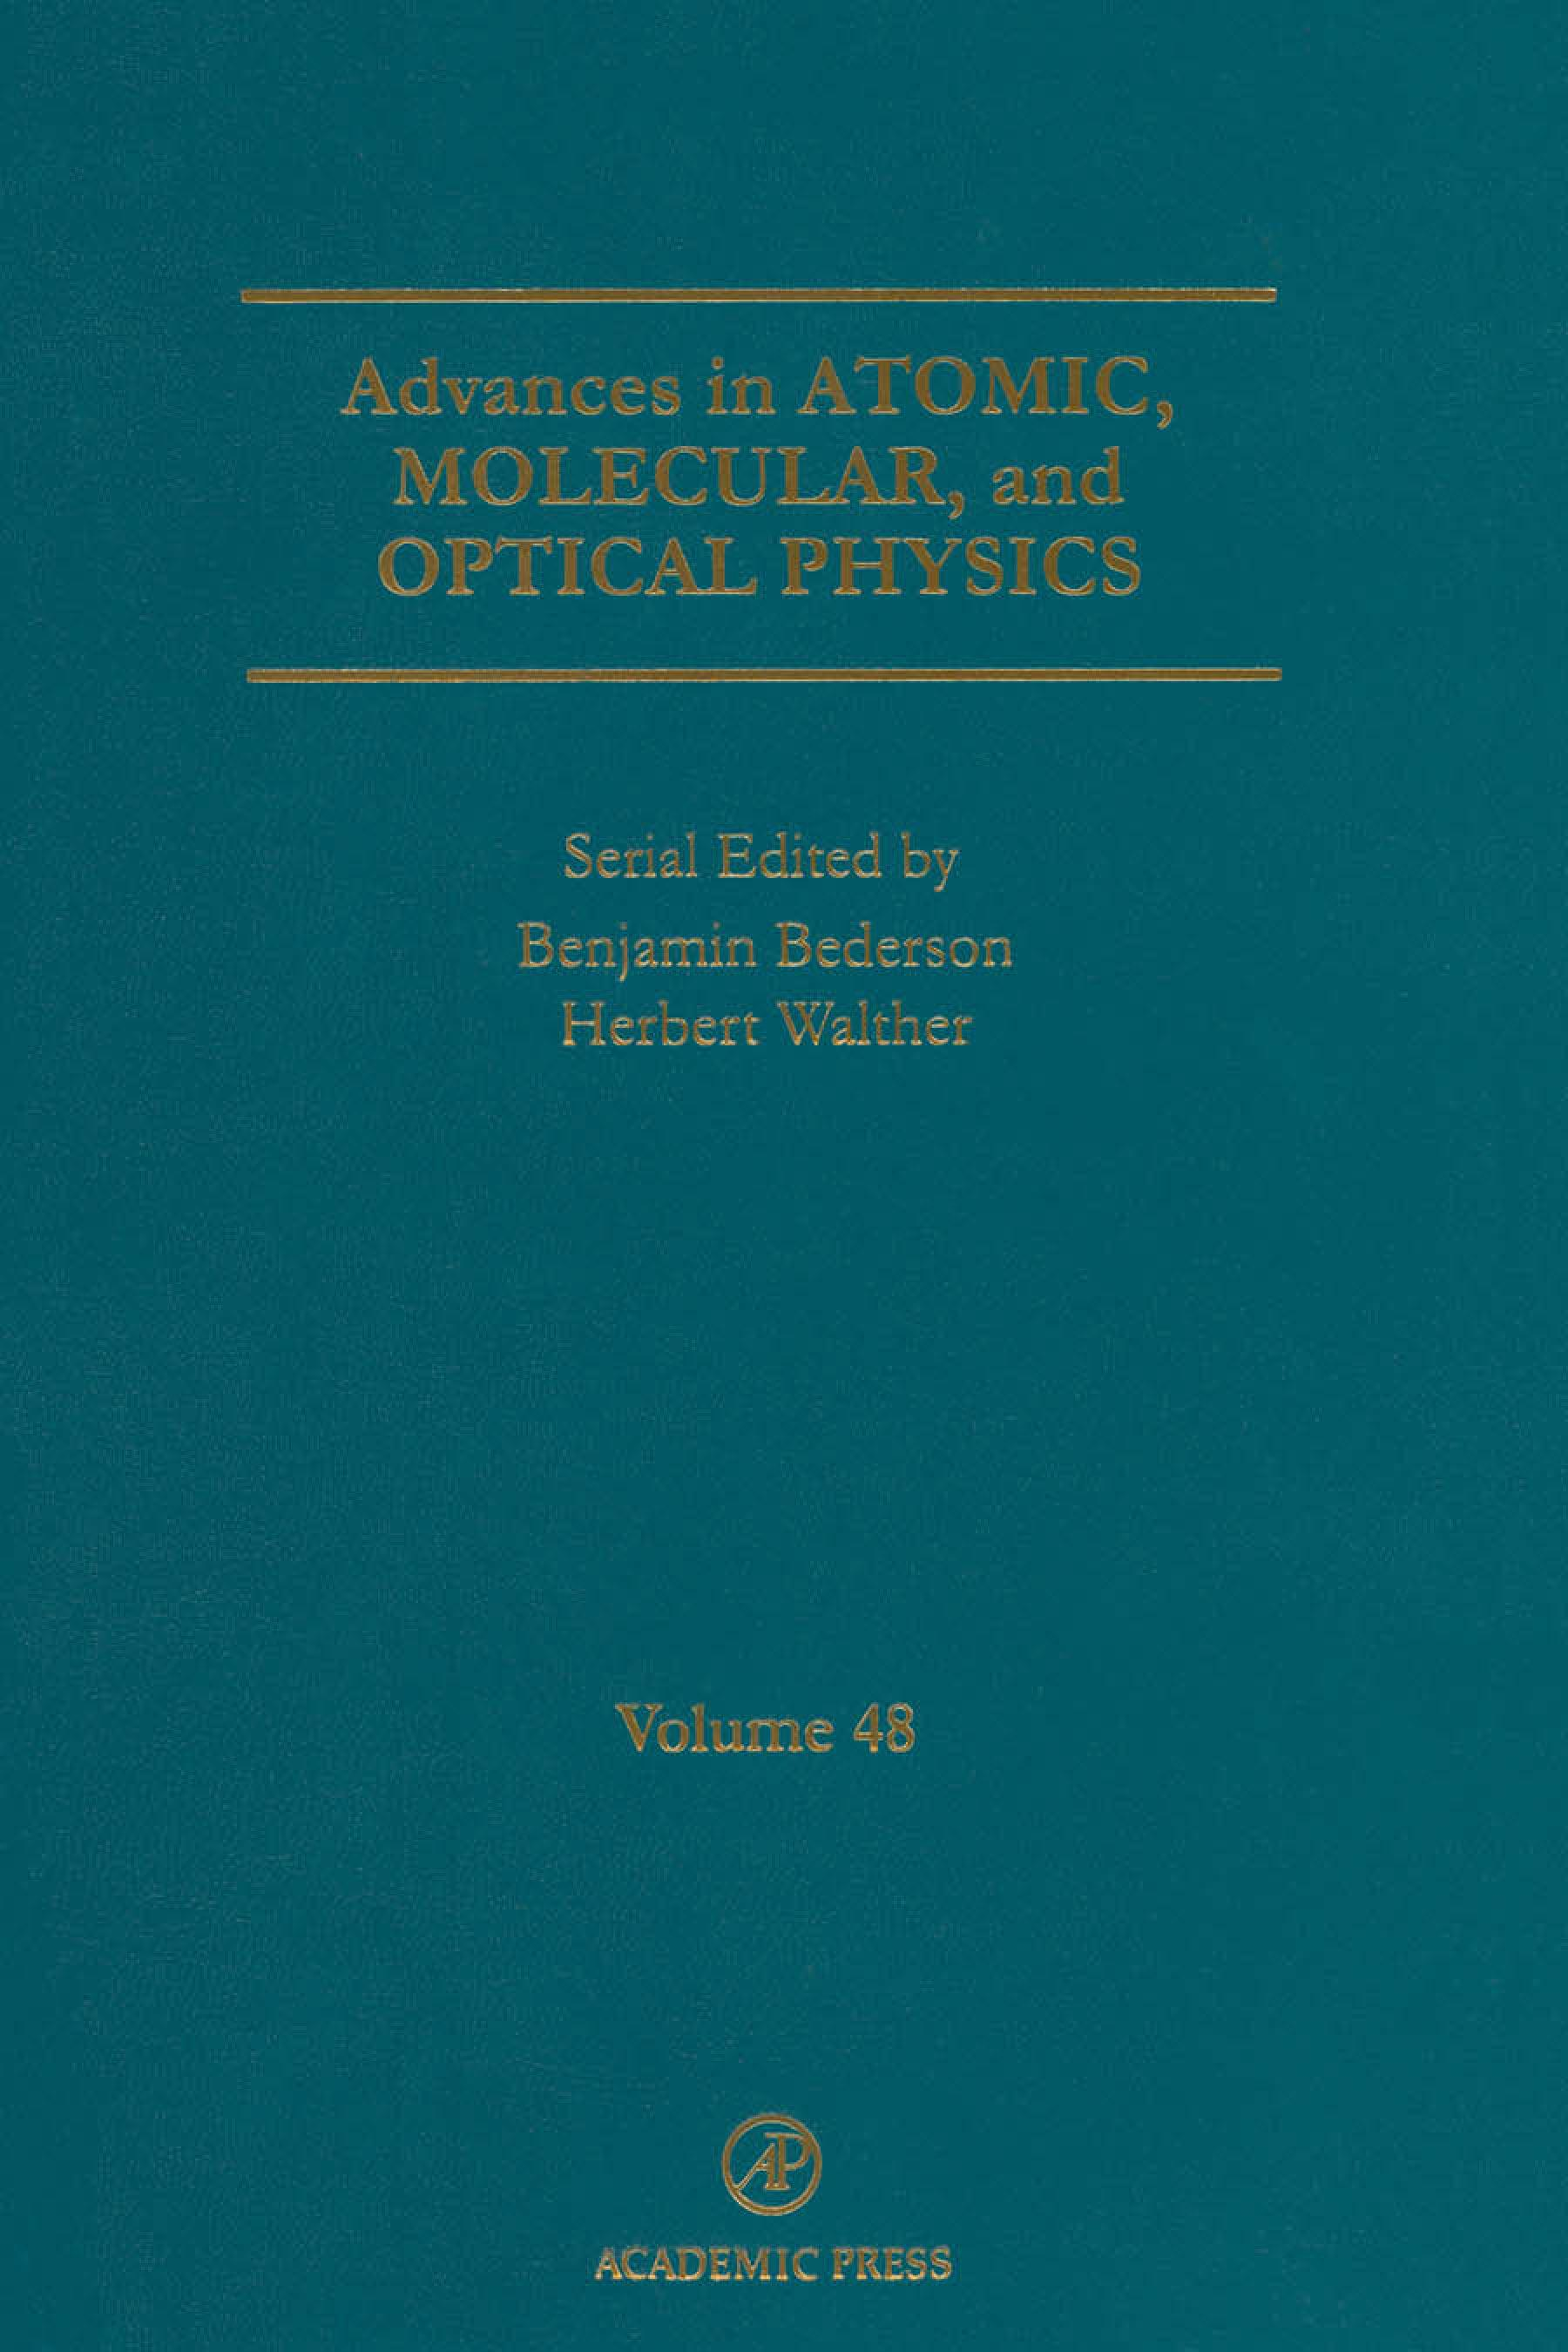 Advances in Atomic, Molecular, and Optical Physics: Volume 48 EB9780080526072